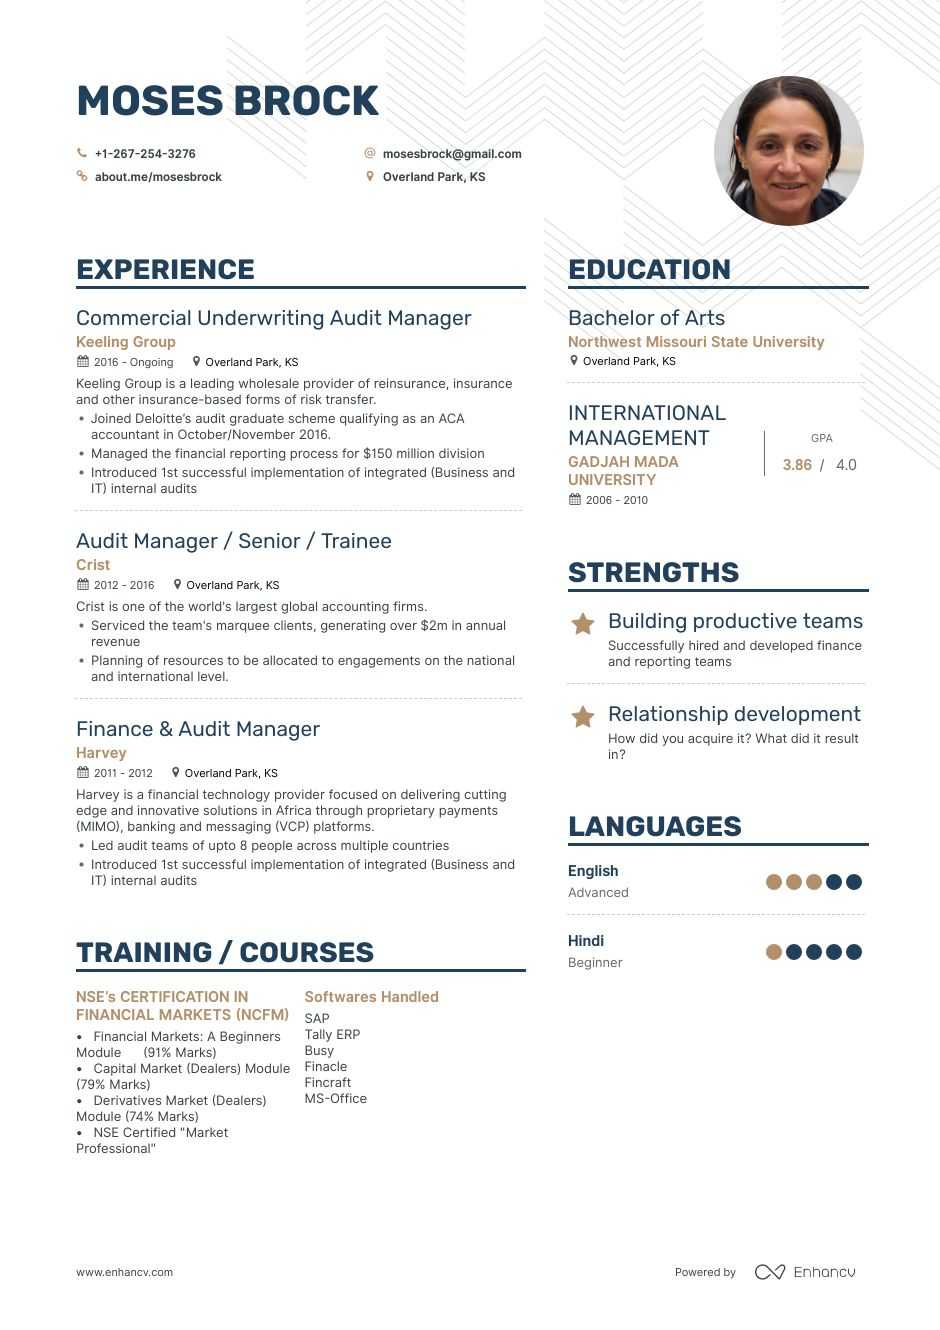 Top Audit Manager Resume Examples Samples For 2020 Enhancv Com